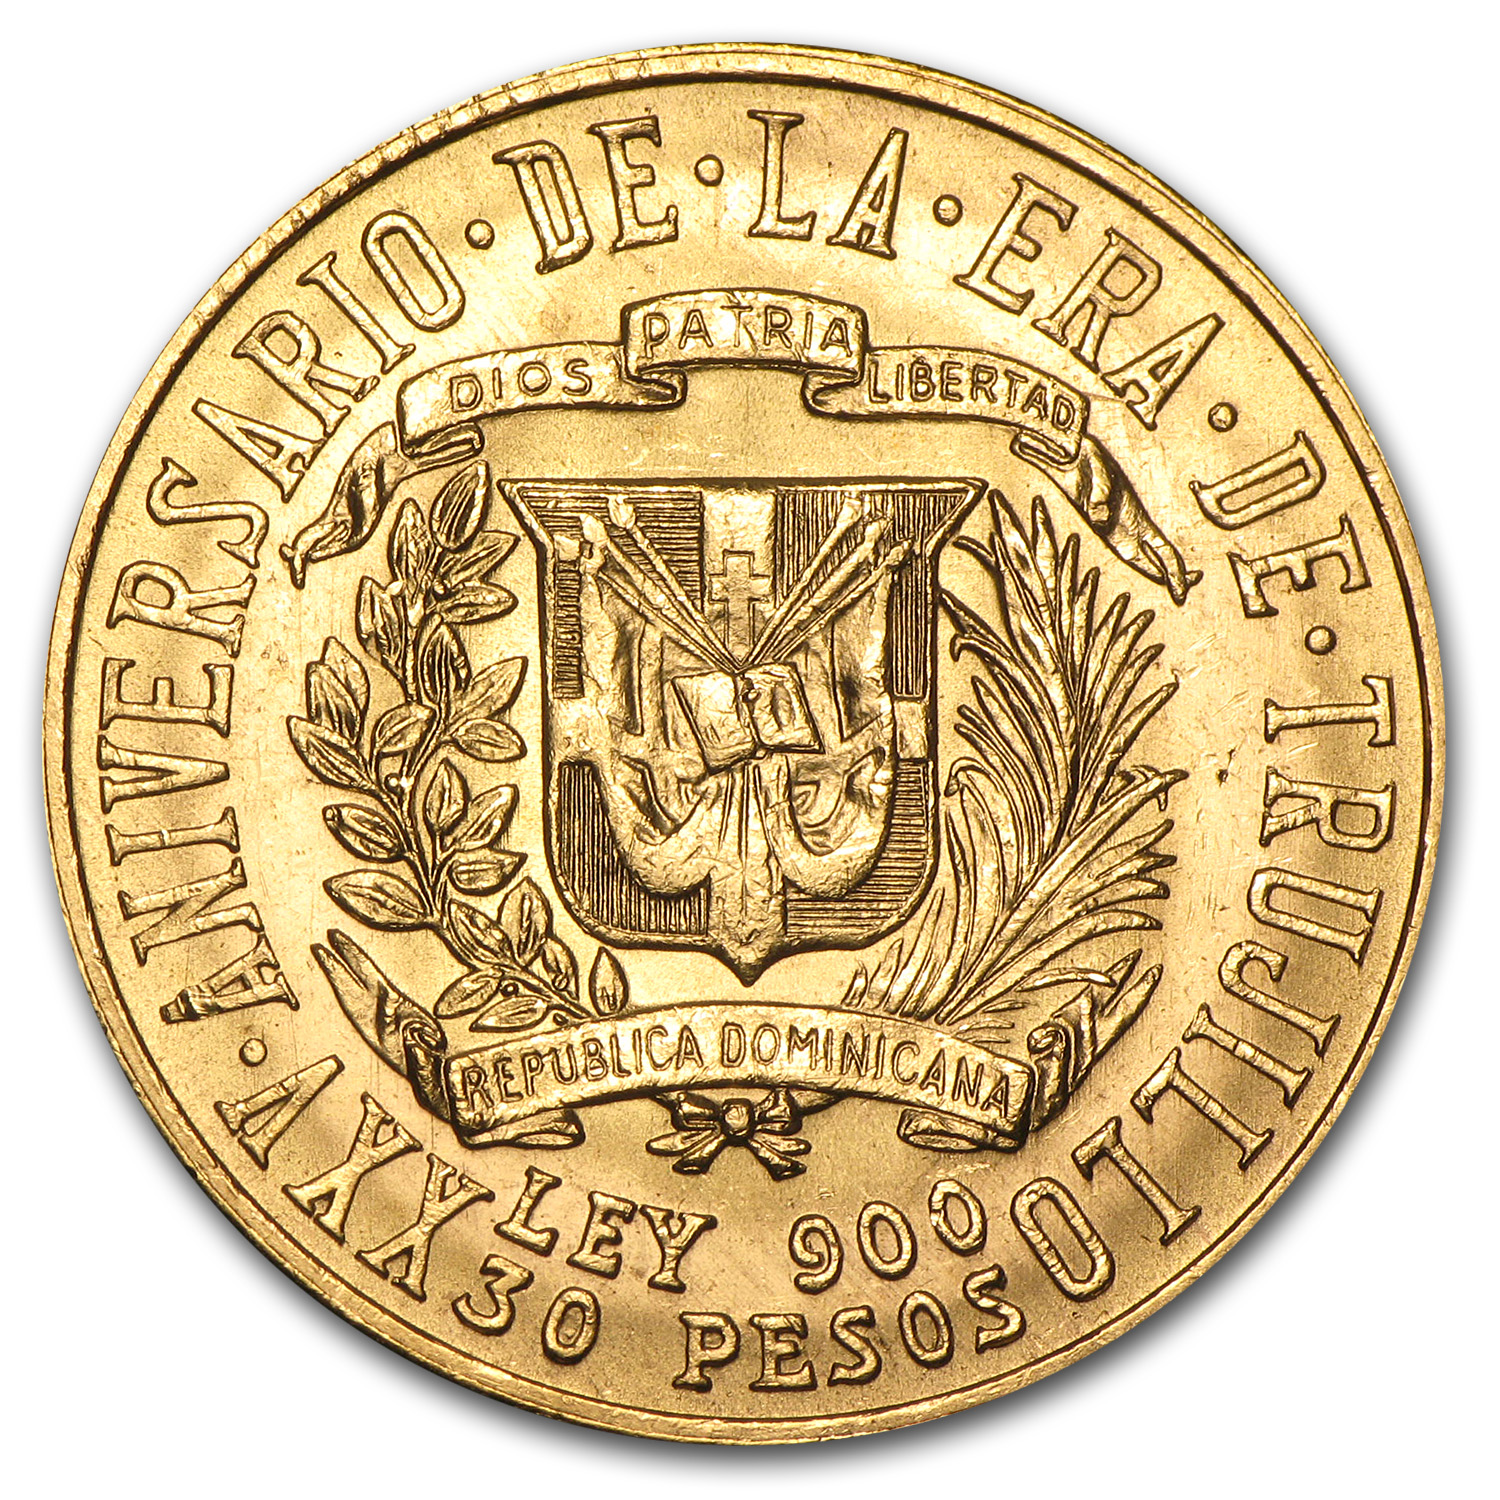 1955 Dominican Republic Gold 30 Pesos BU